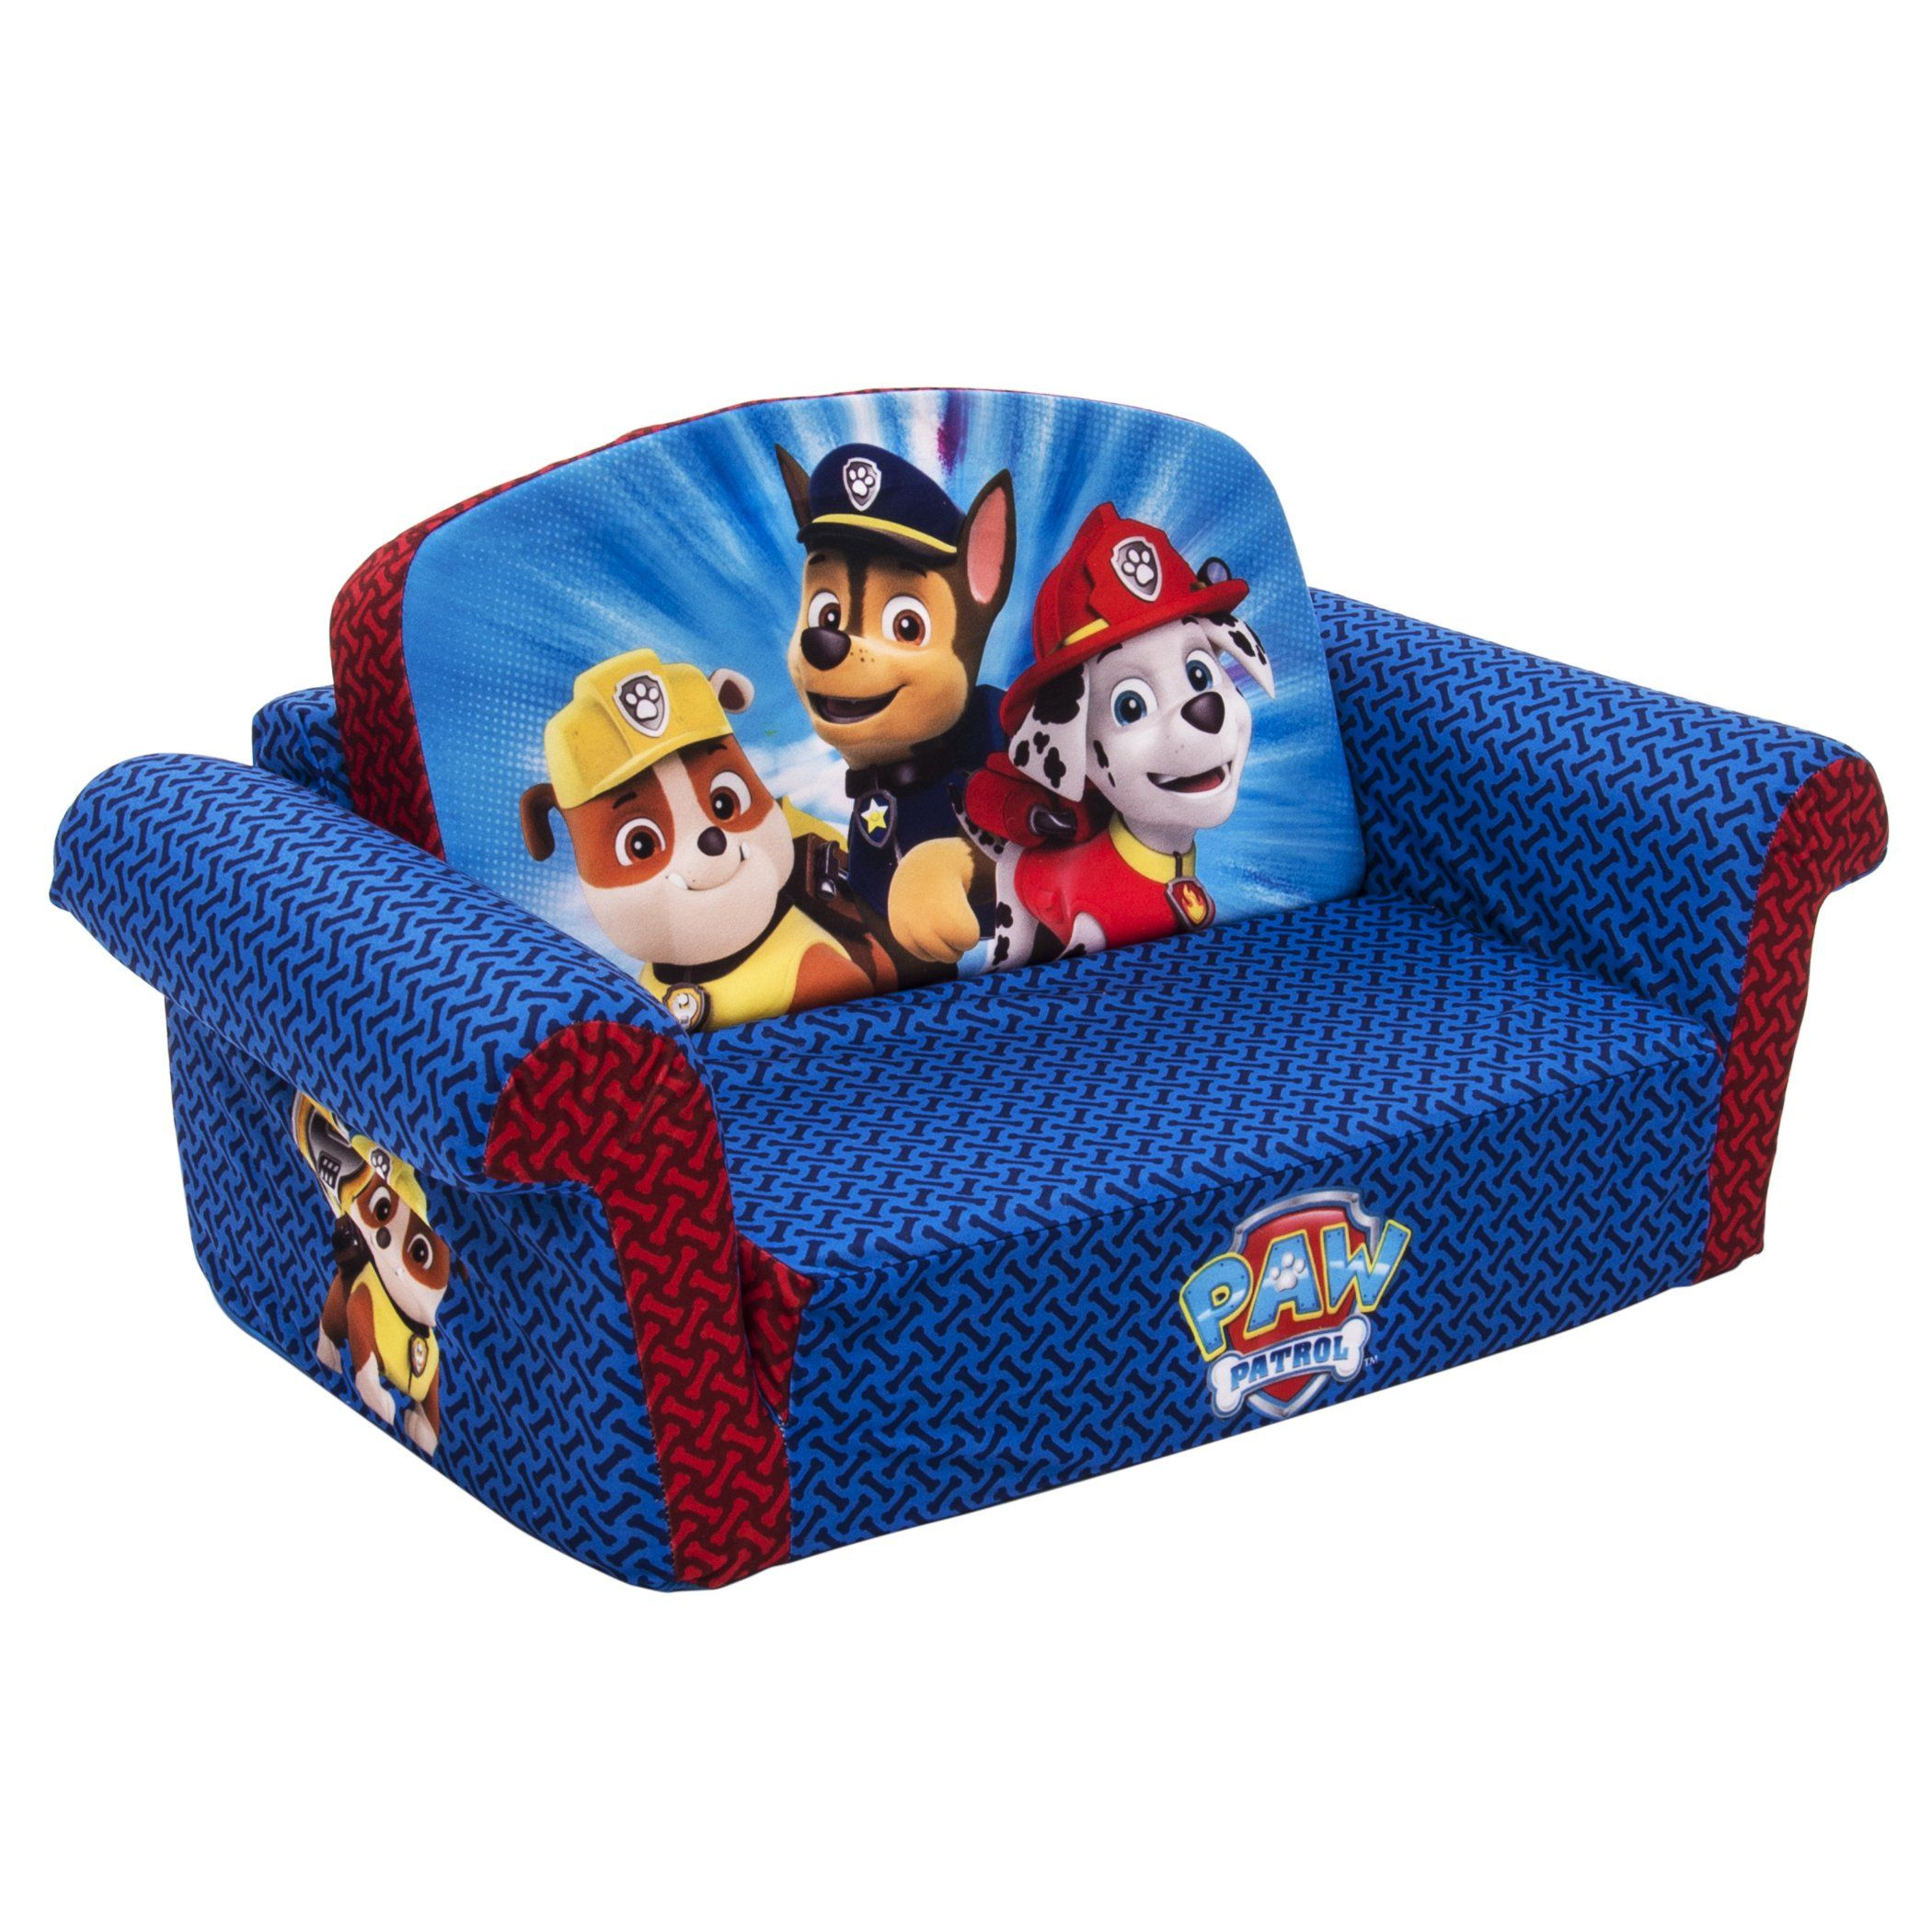 Cheap Sectional Sofas Amazon Marshmallow Children us Furniture Paw Patrol Flip Open Sofa Toys u